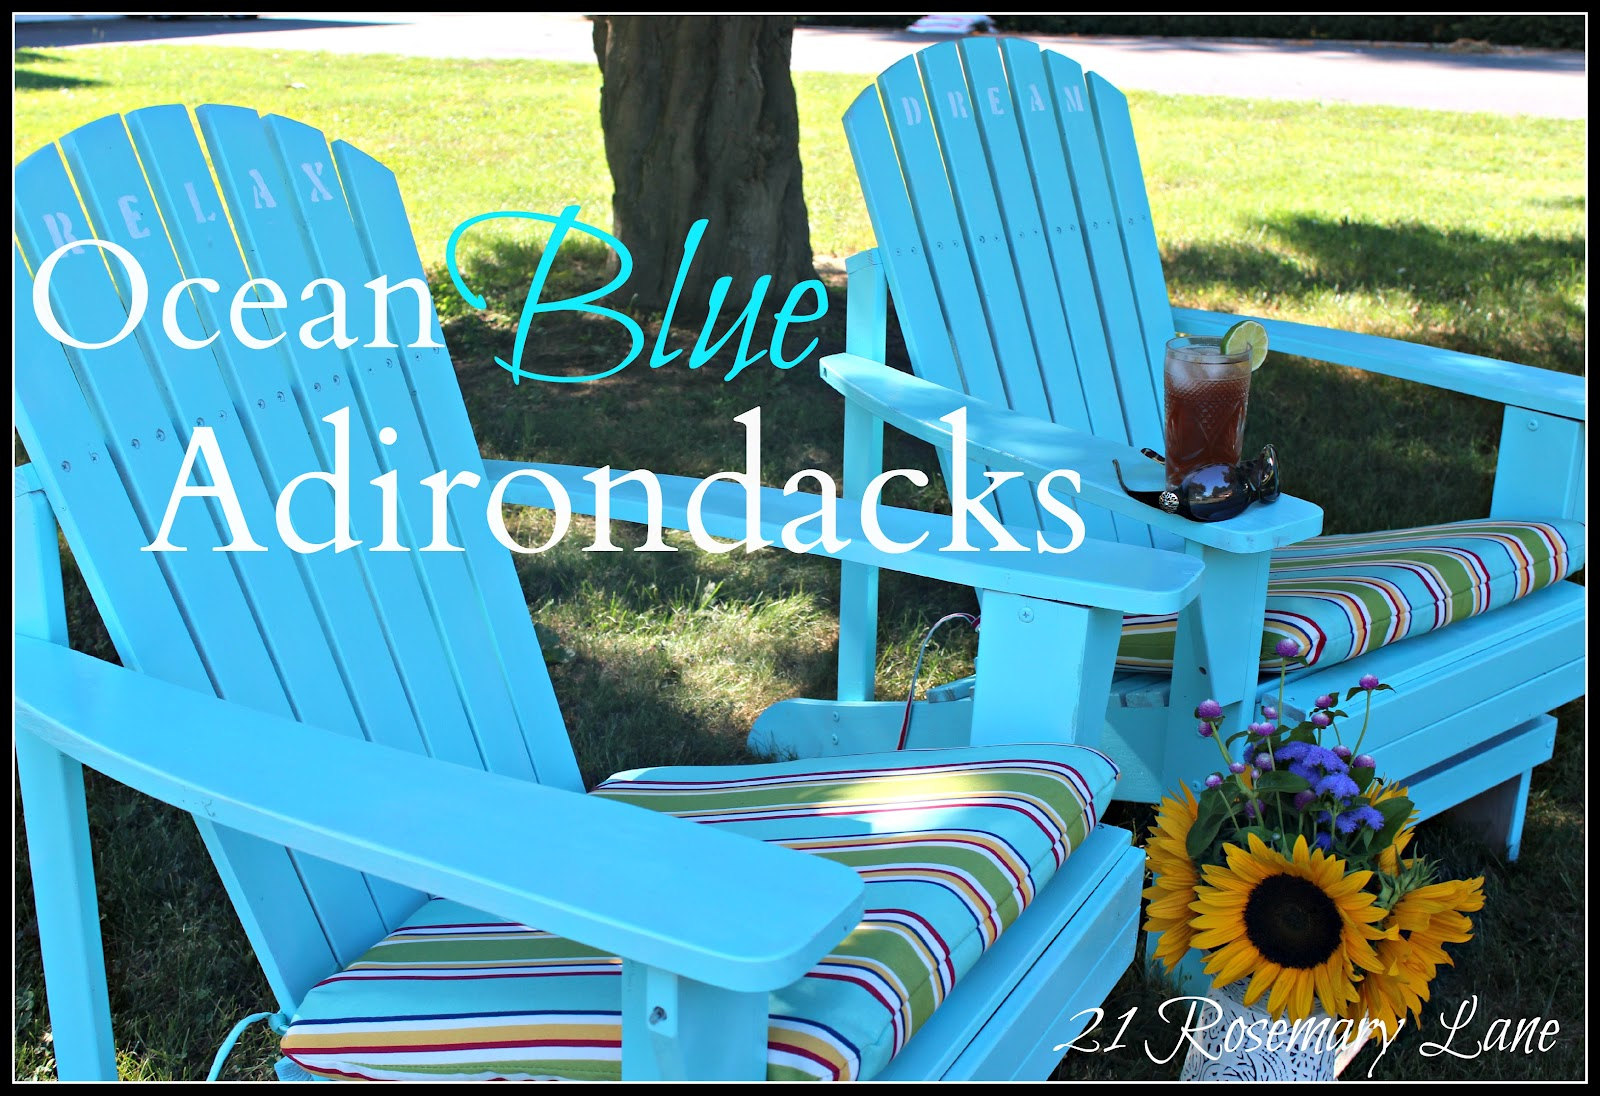 Paint For Adirondack Chairs Unusual Bedrooms 21 Rosemary Lane My Freshly Painted